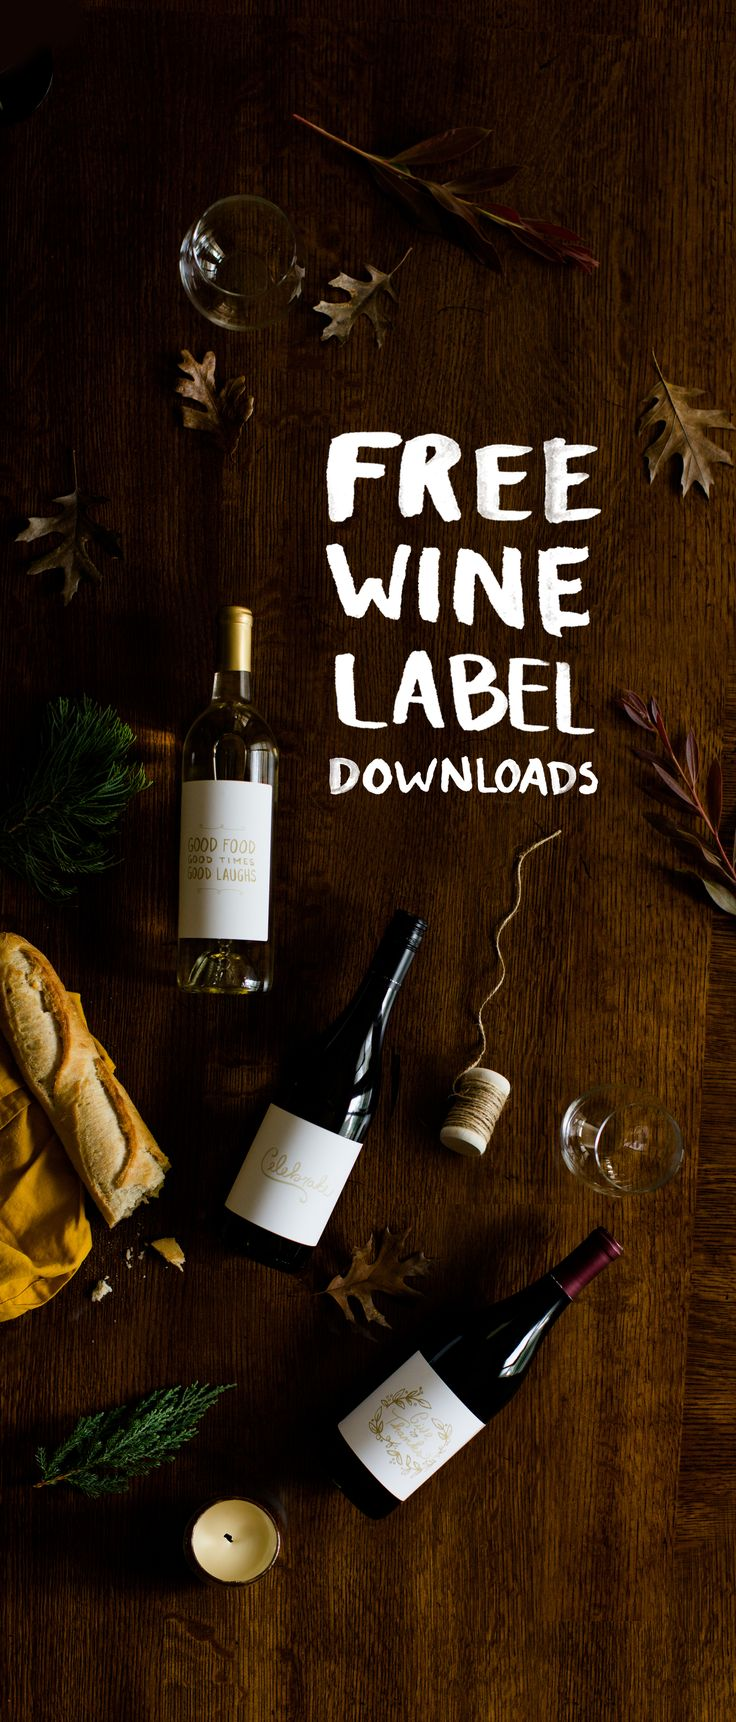 Easy DIY Wine Labels for the Holidays with Free Downloads  |  The Fresh Exchange